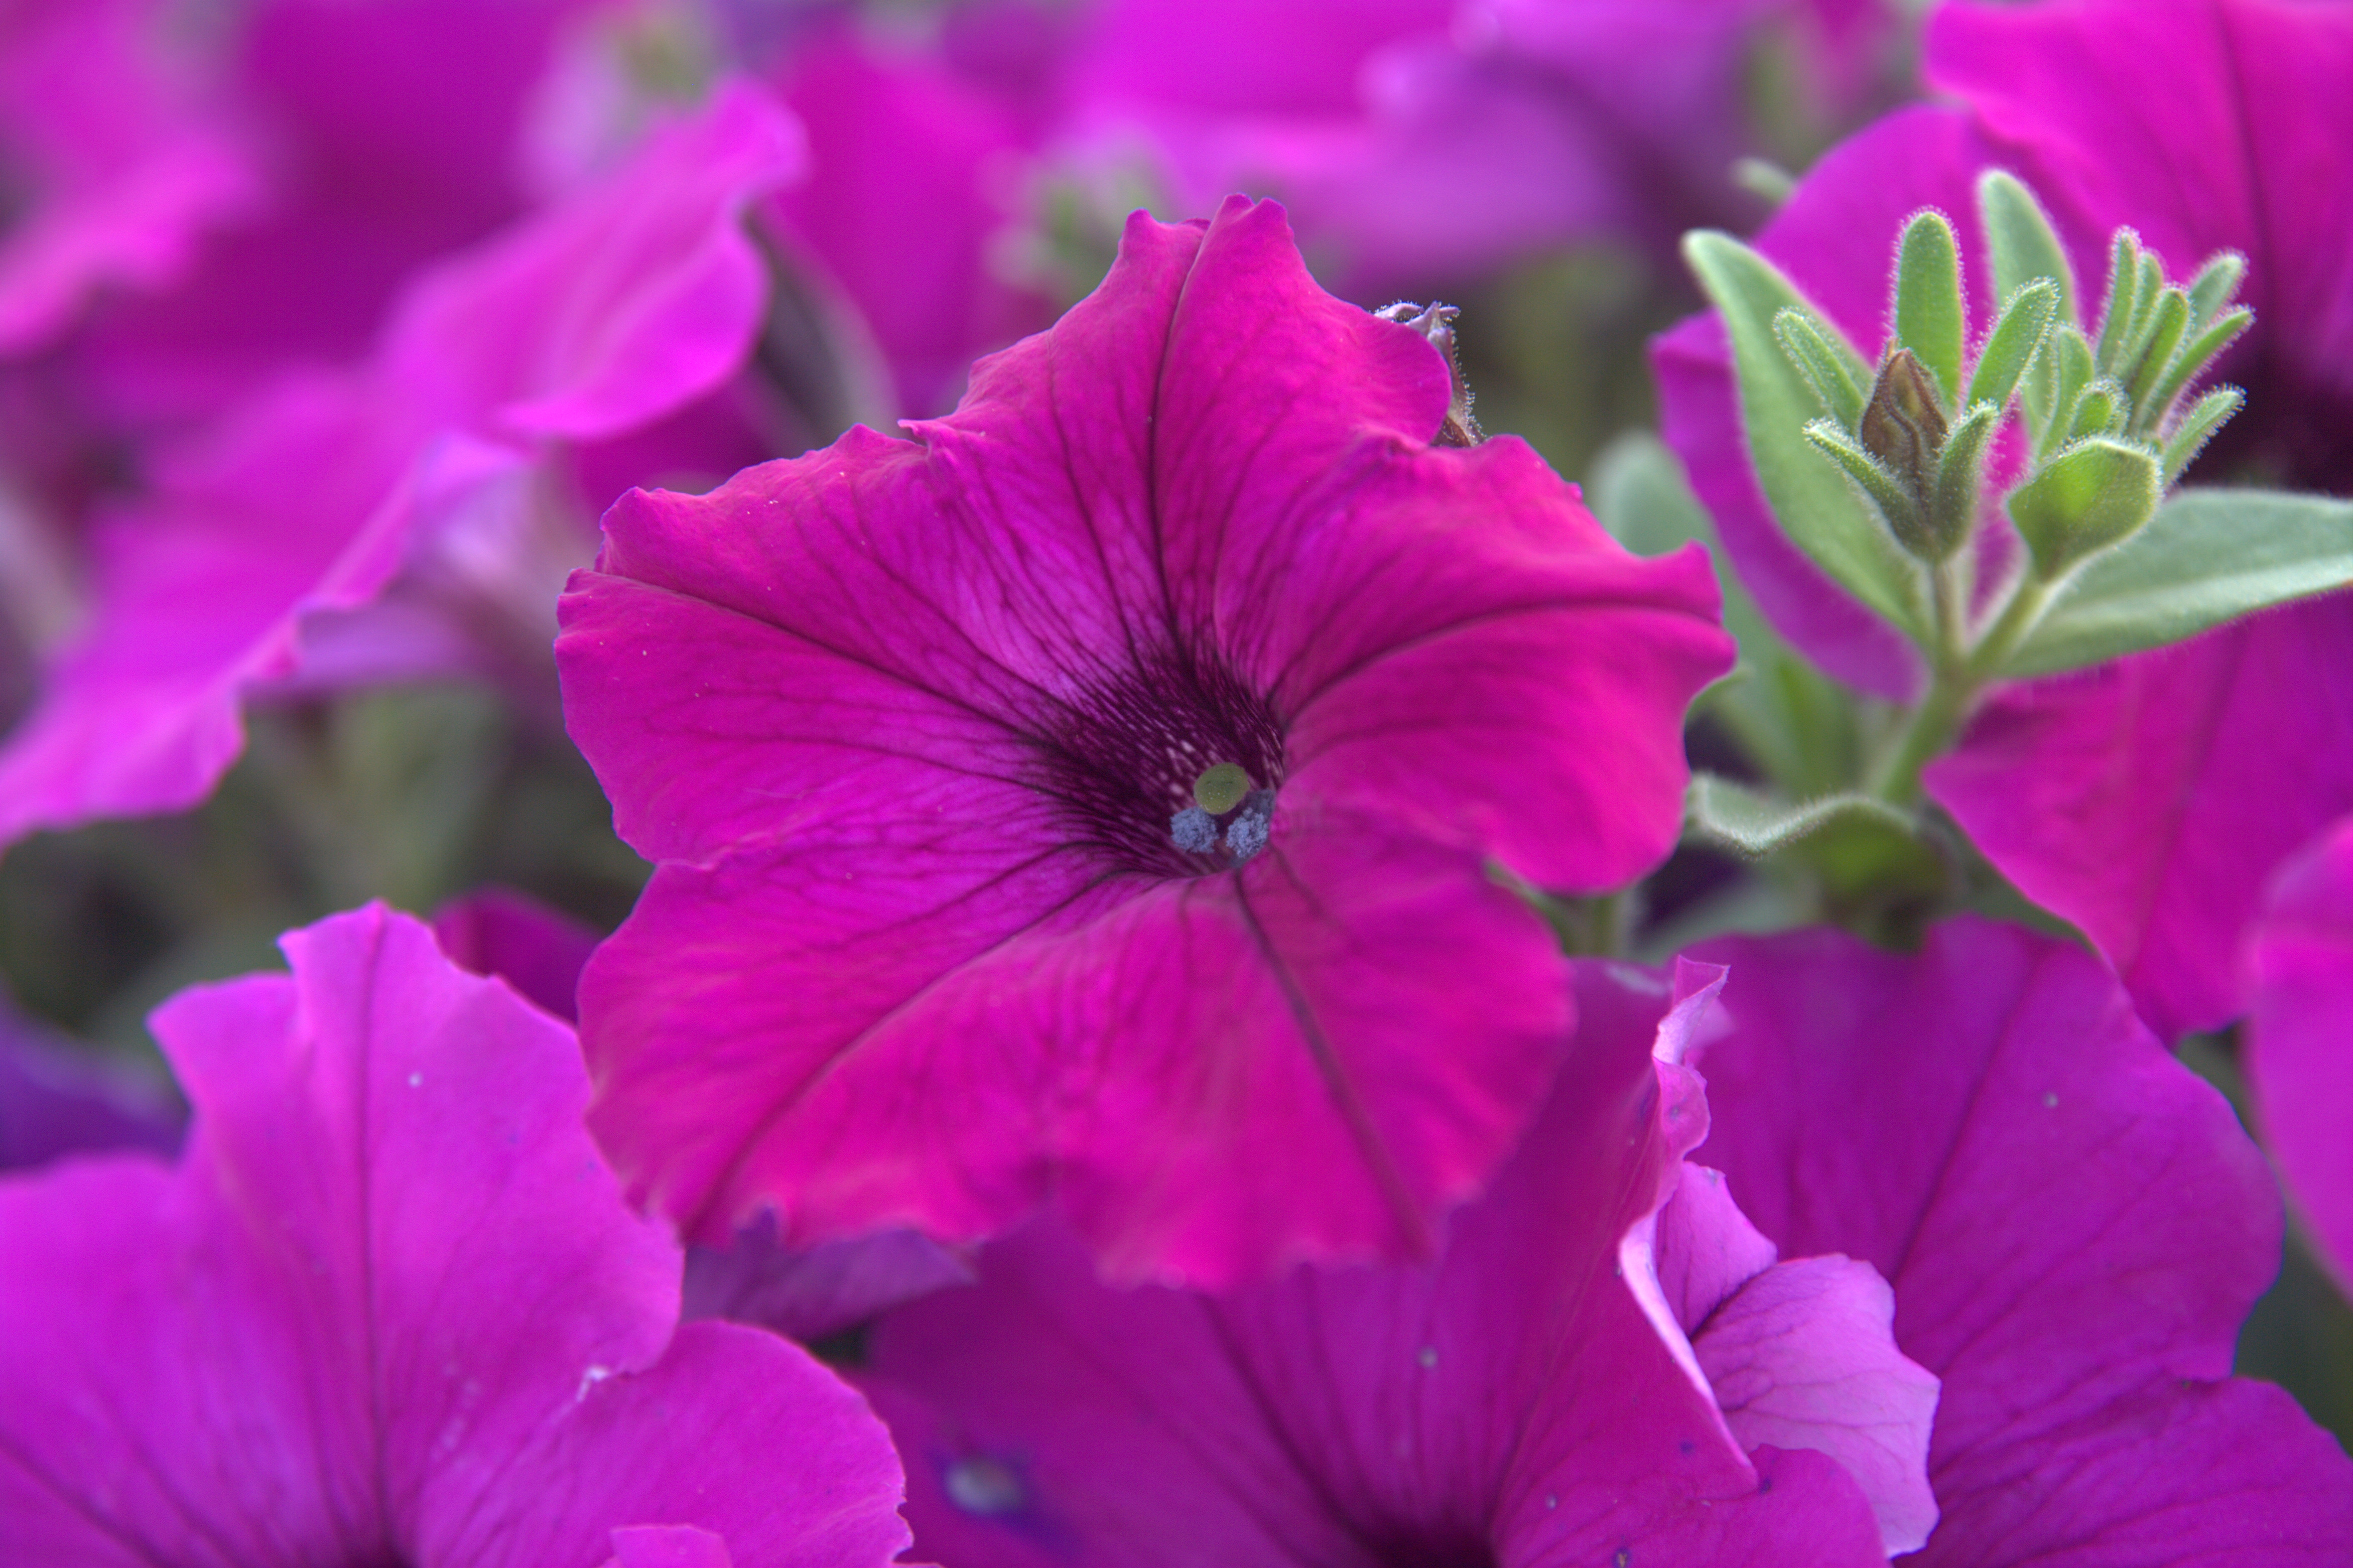 Follow these tips to improve petunia performance